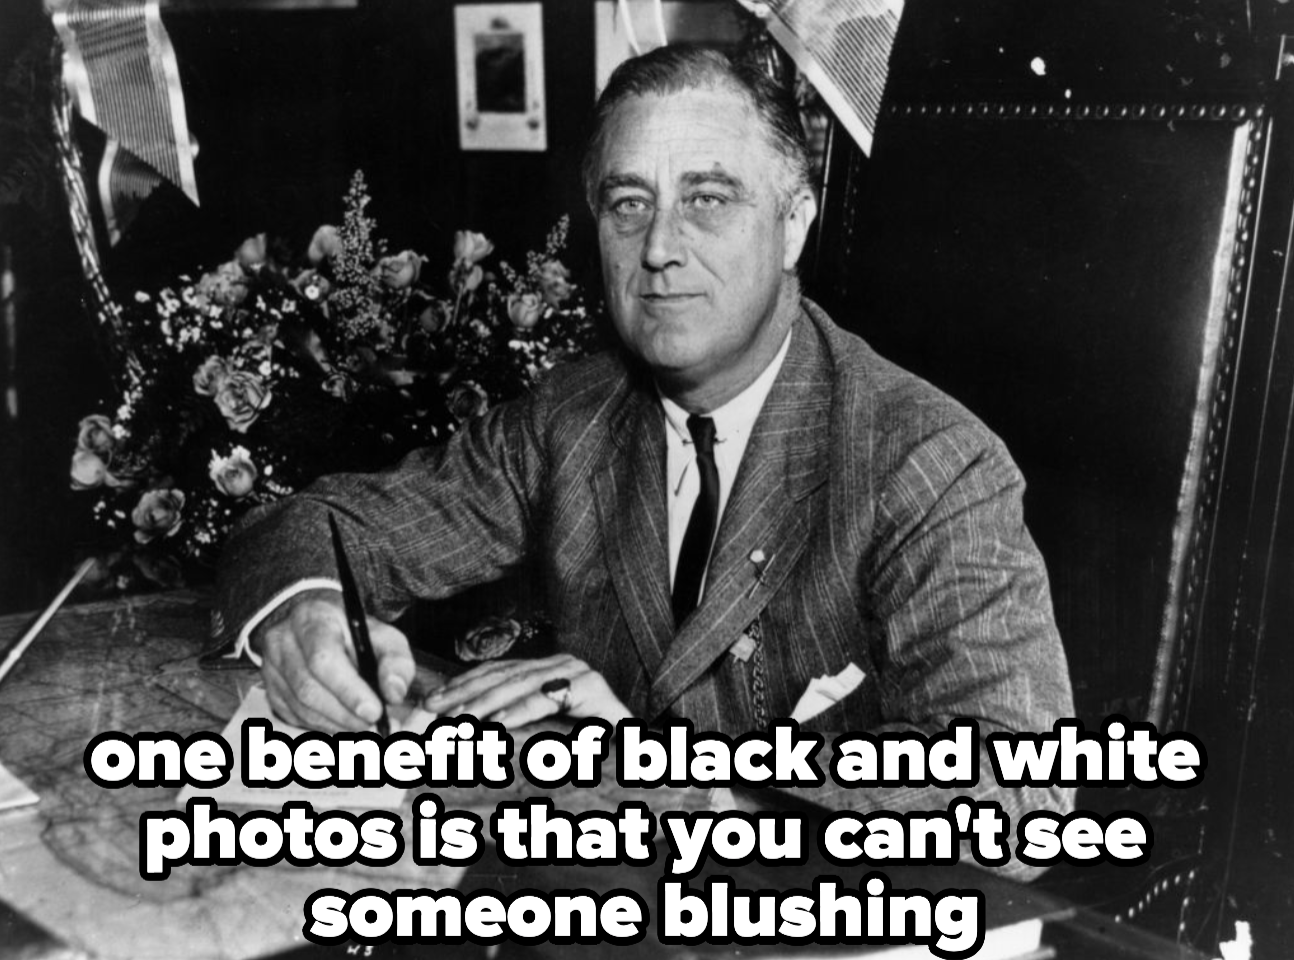 FDR, with caption: one benefit of black and white photos is that you can't see someone blushing